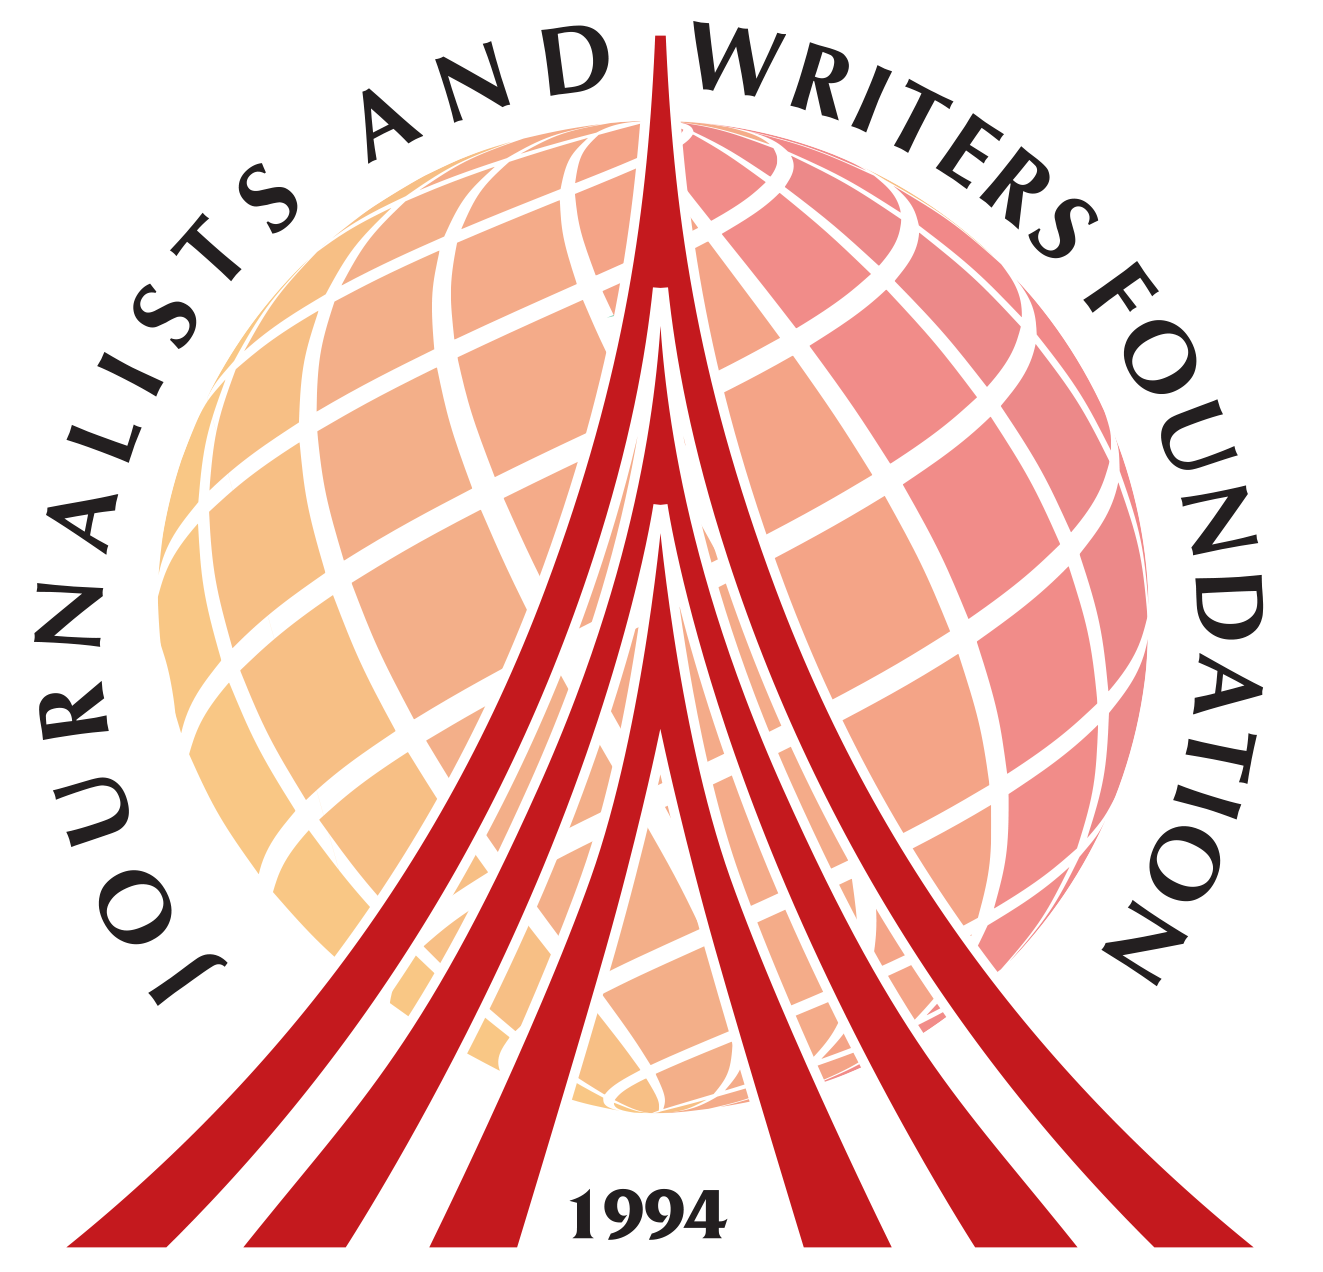 The Journalists and Writers Foundation (JWF)